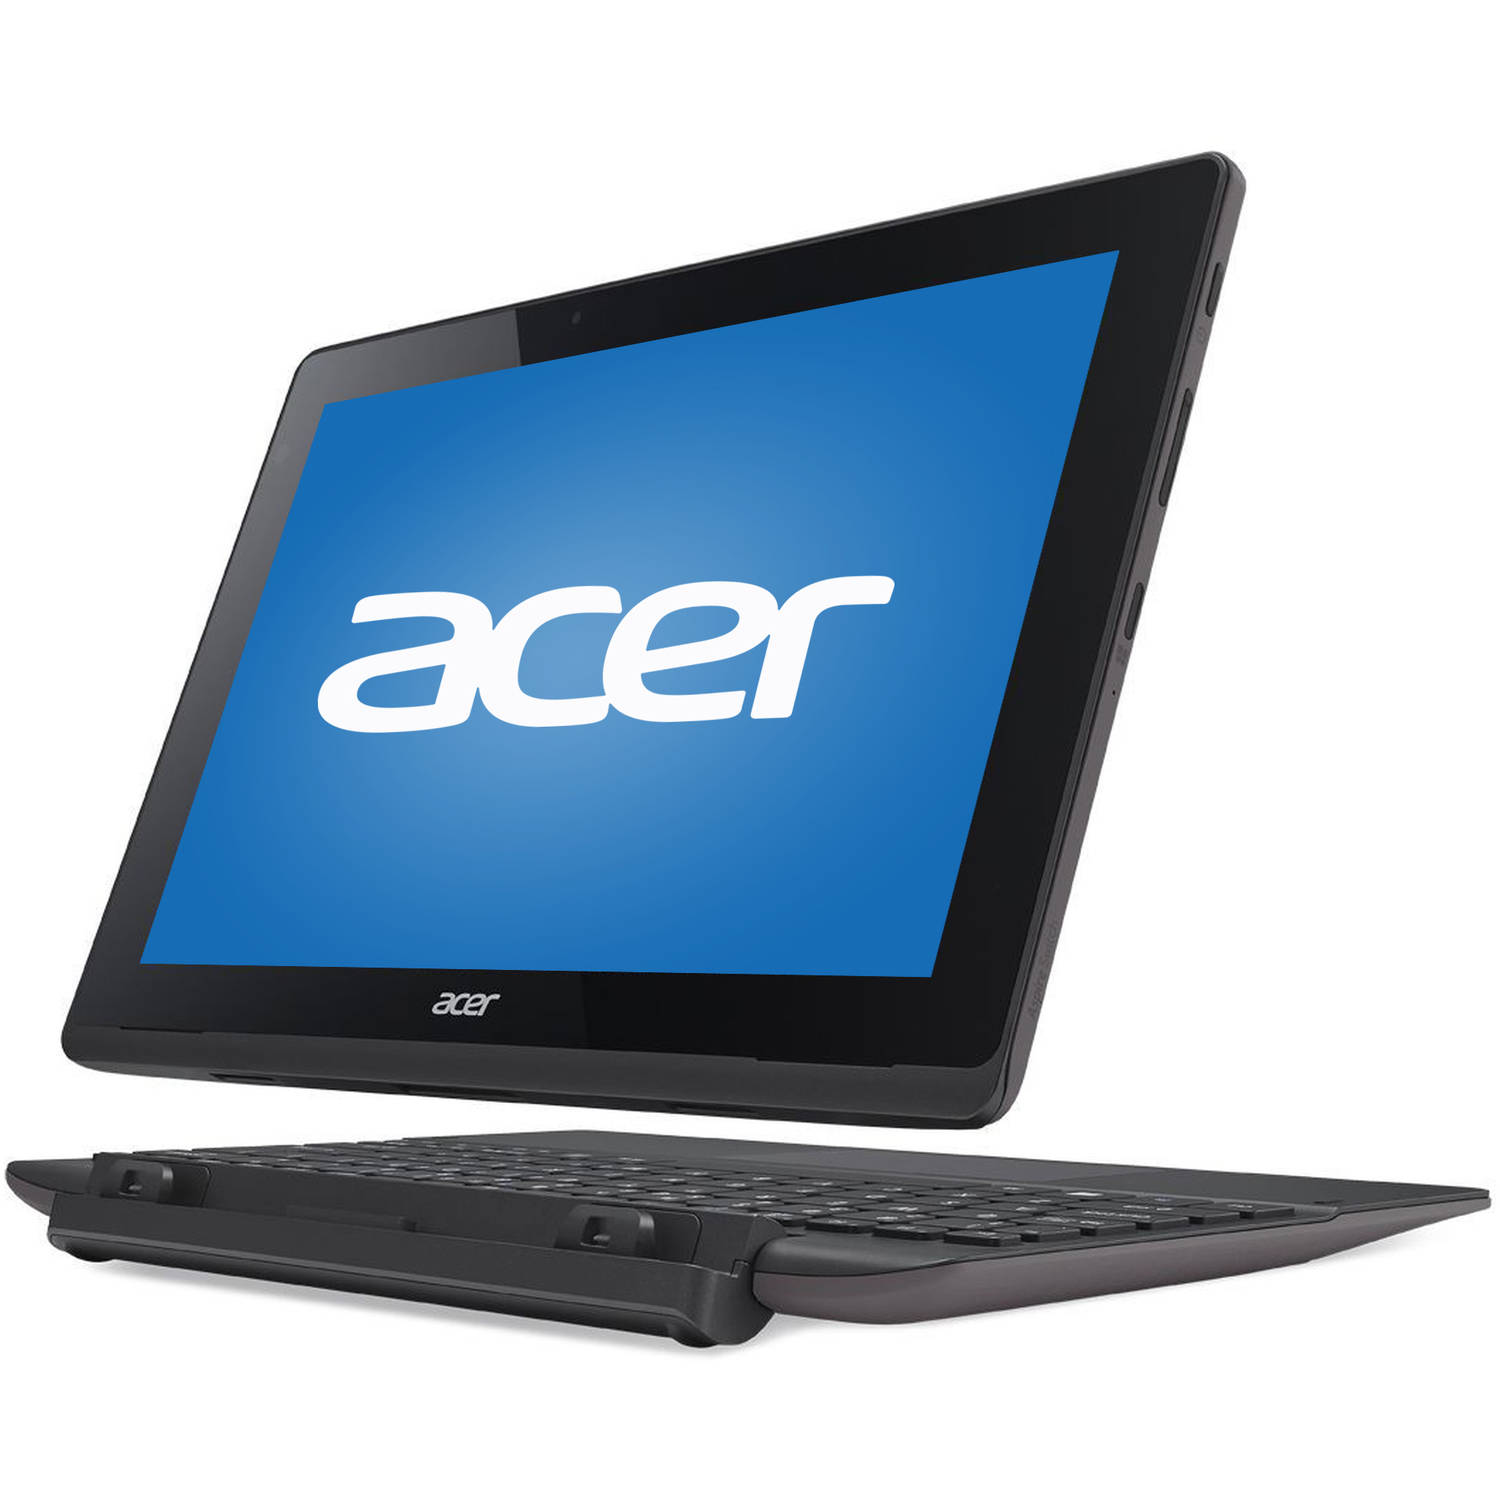 "Acer Black 10.1"" Aspire SW3-016-13VA Laptop PC with Intel Atom x5-Z8300 Processor, 2GB Memory, touch screen, 64GB Flash Drive and Windows 10"